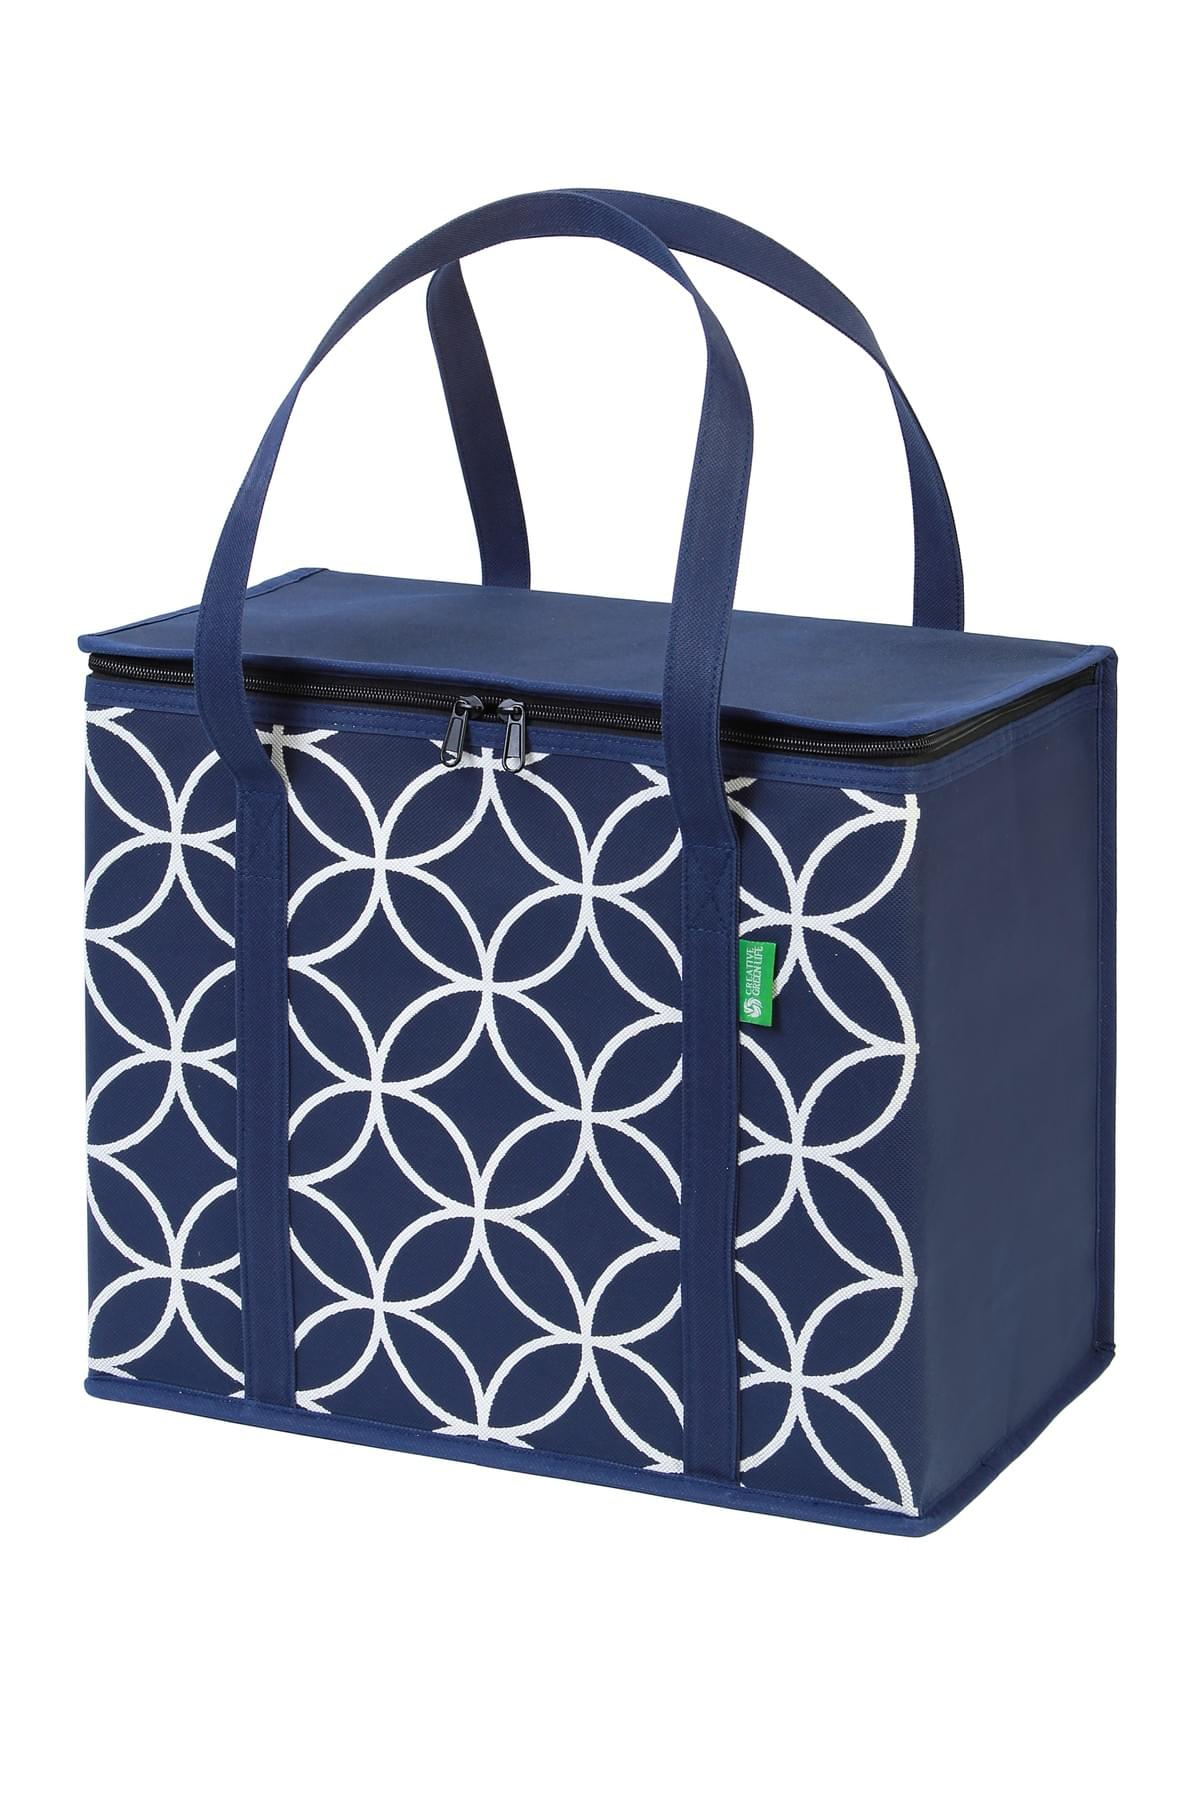 Blue, Gray and Chevron grocery totes